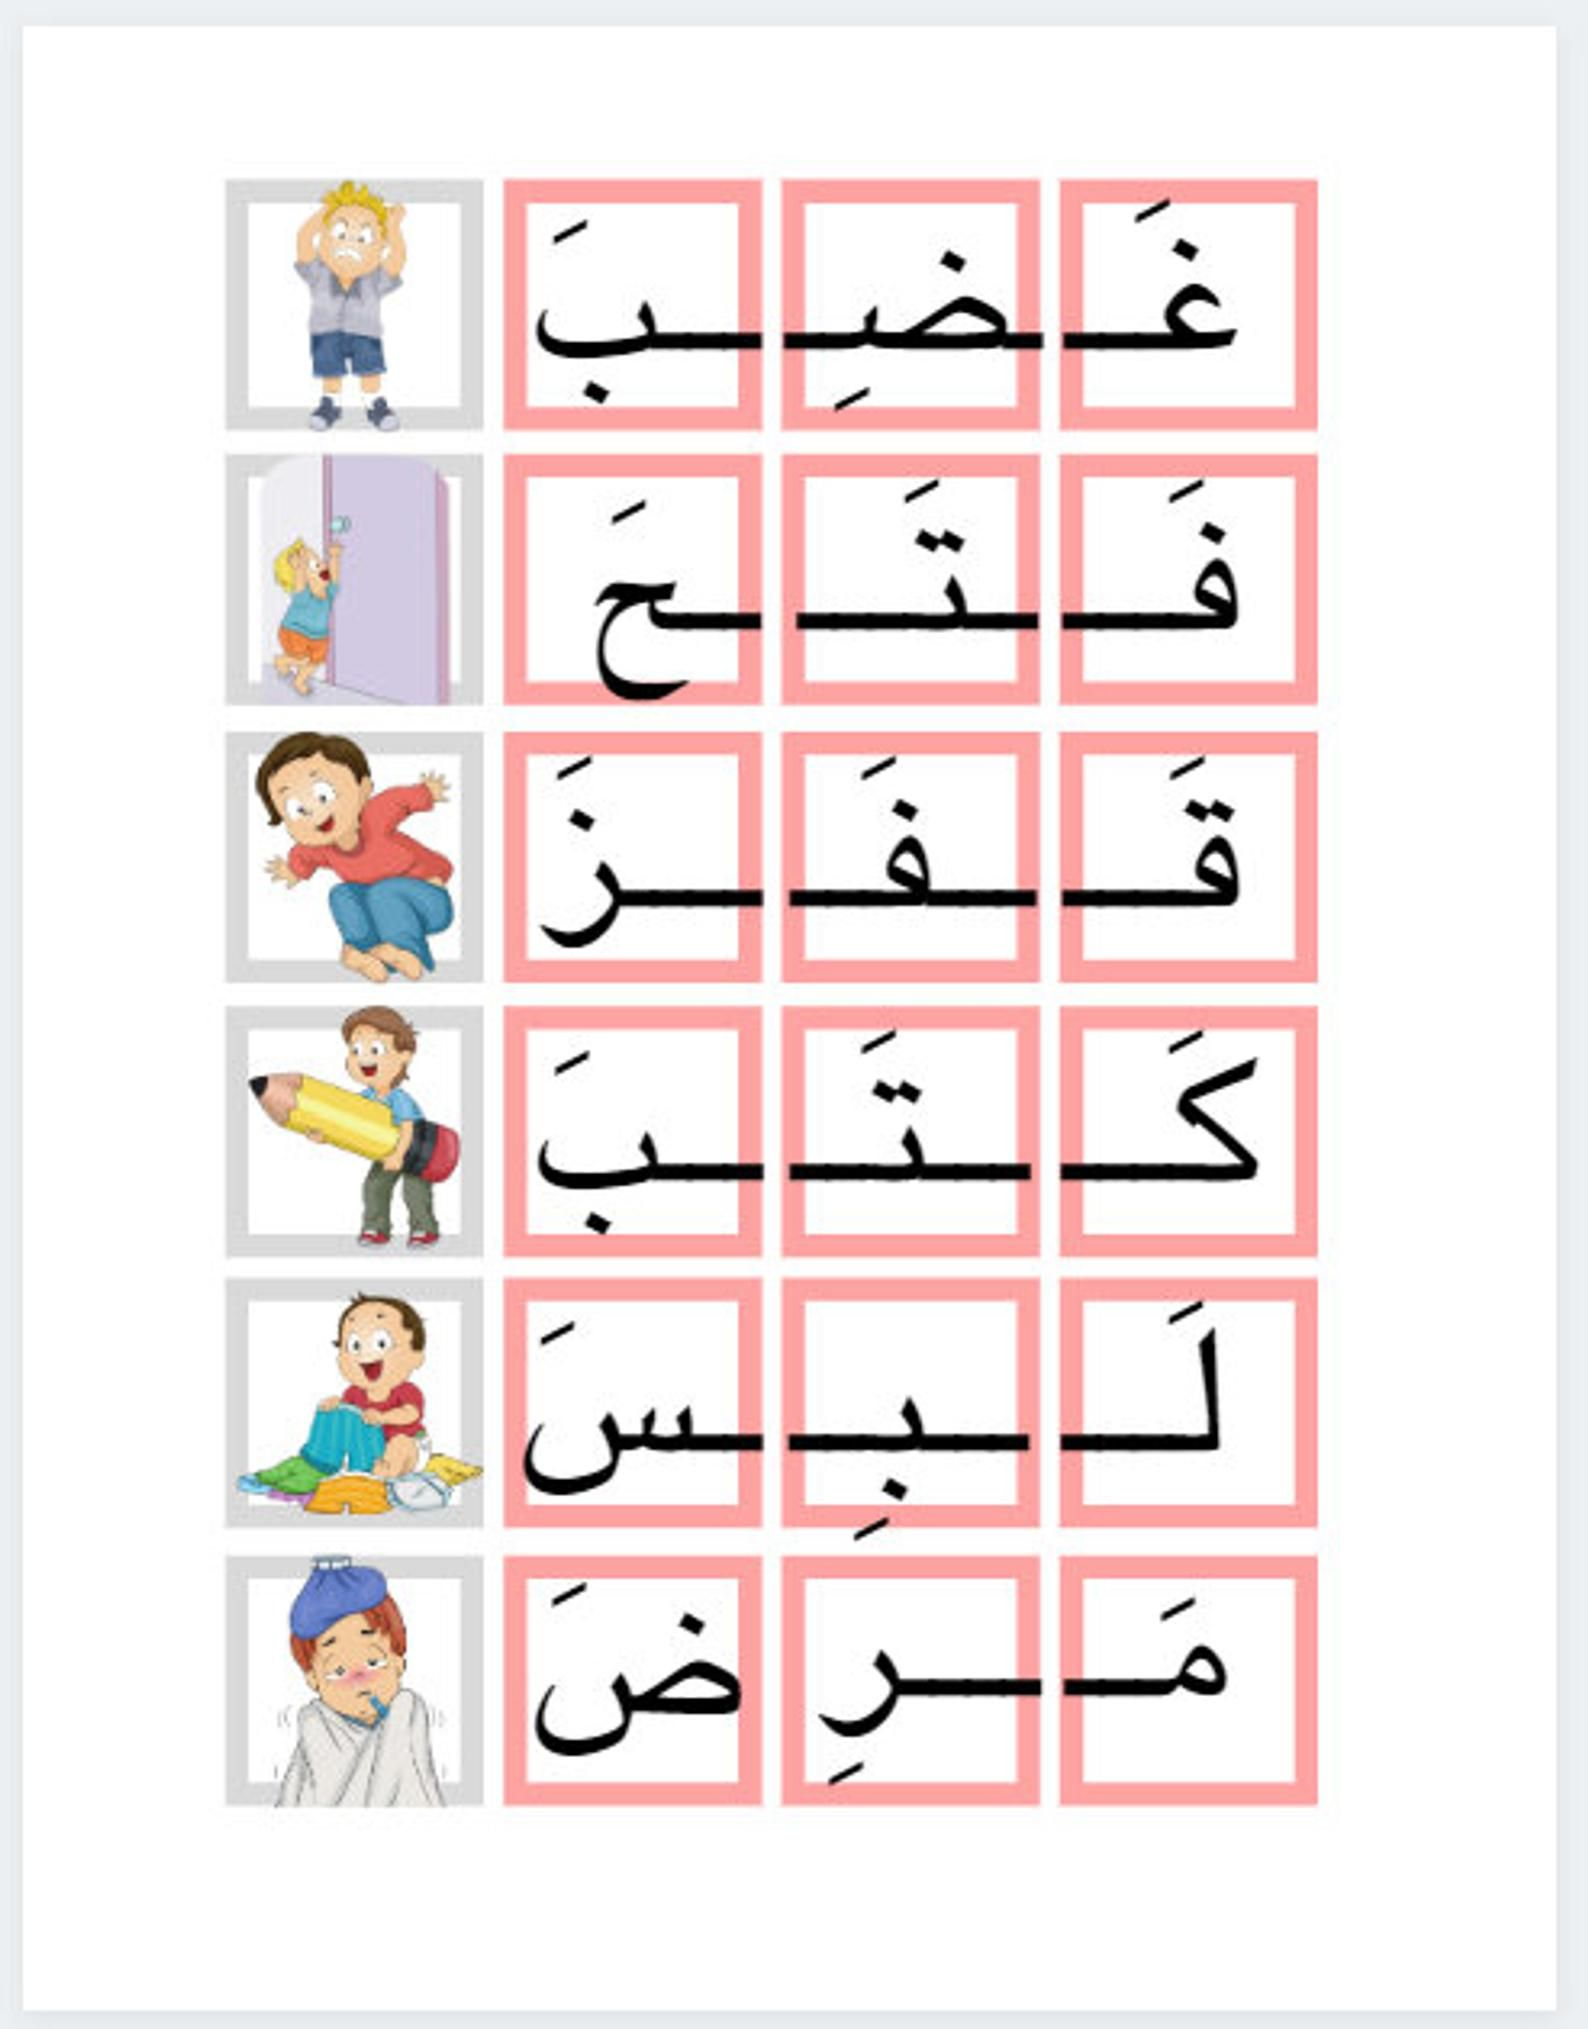 Printable Toddler Arabic Build A Word Cards Verbs With Pictures Beginner Preschool Arabic Class Homeschooling Connecting Letters In 2021 Word Cards Arabic Alphabet For Kids Alphabet For Kids